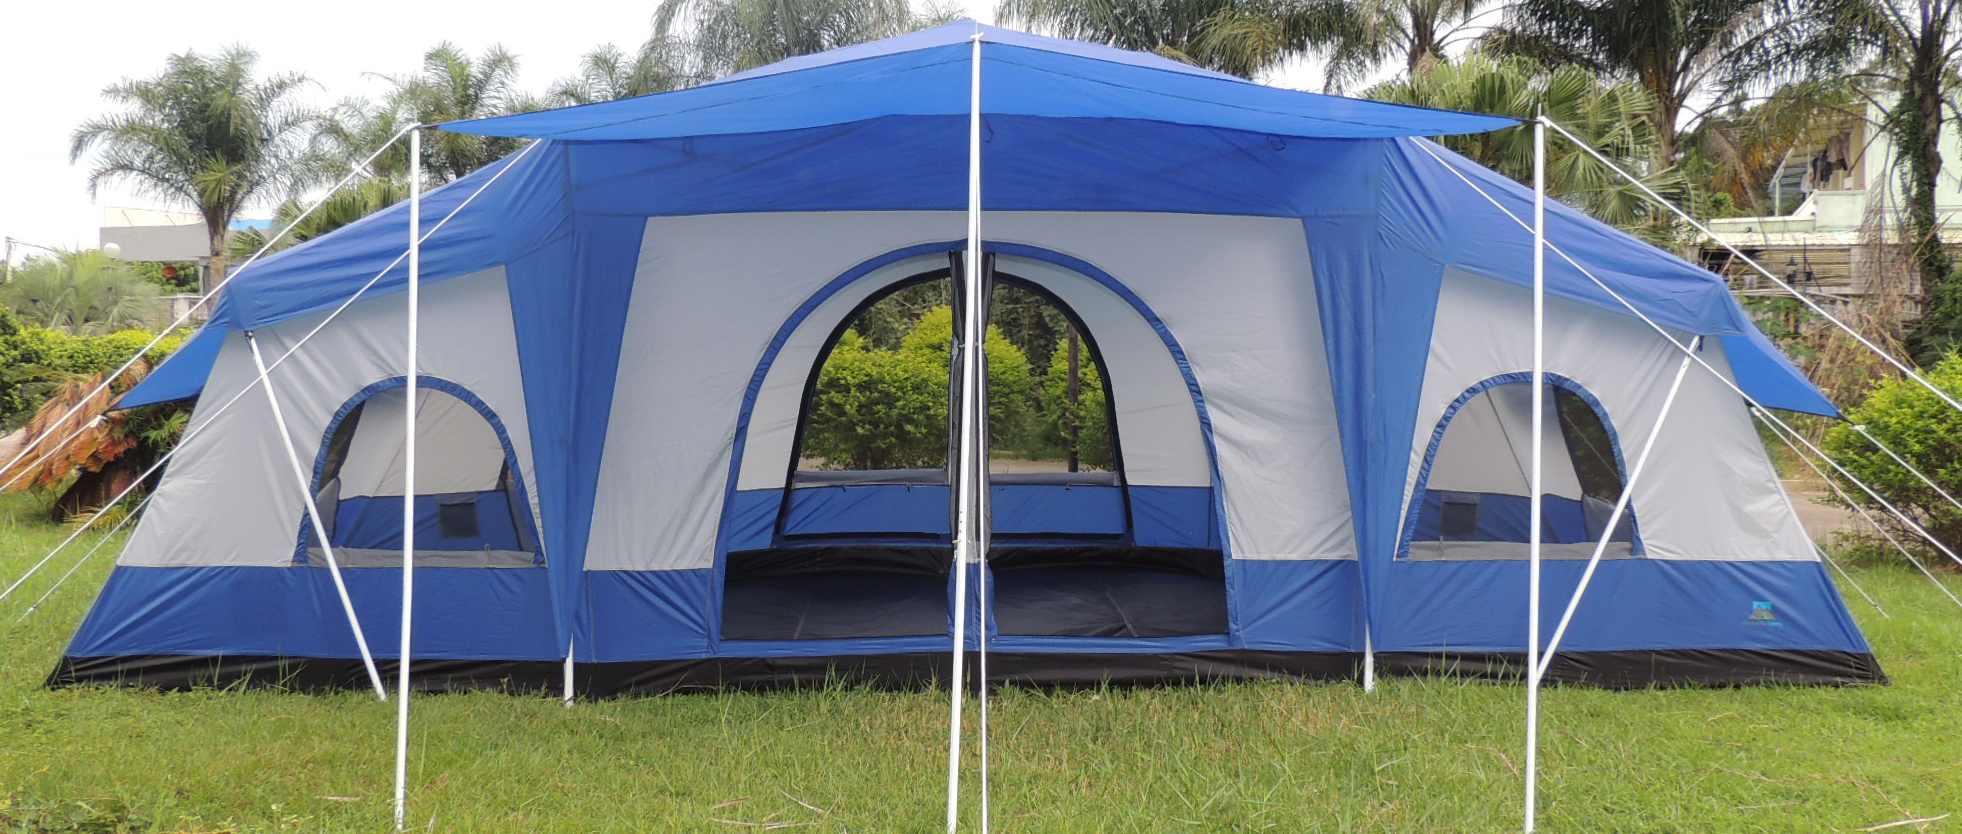 Cabin-Tent-Deluxe-Four-Room-Front-View ... : family sized tents - memphite.com